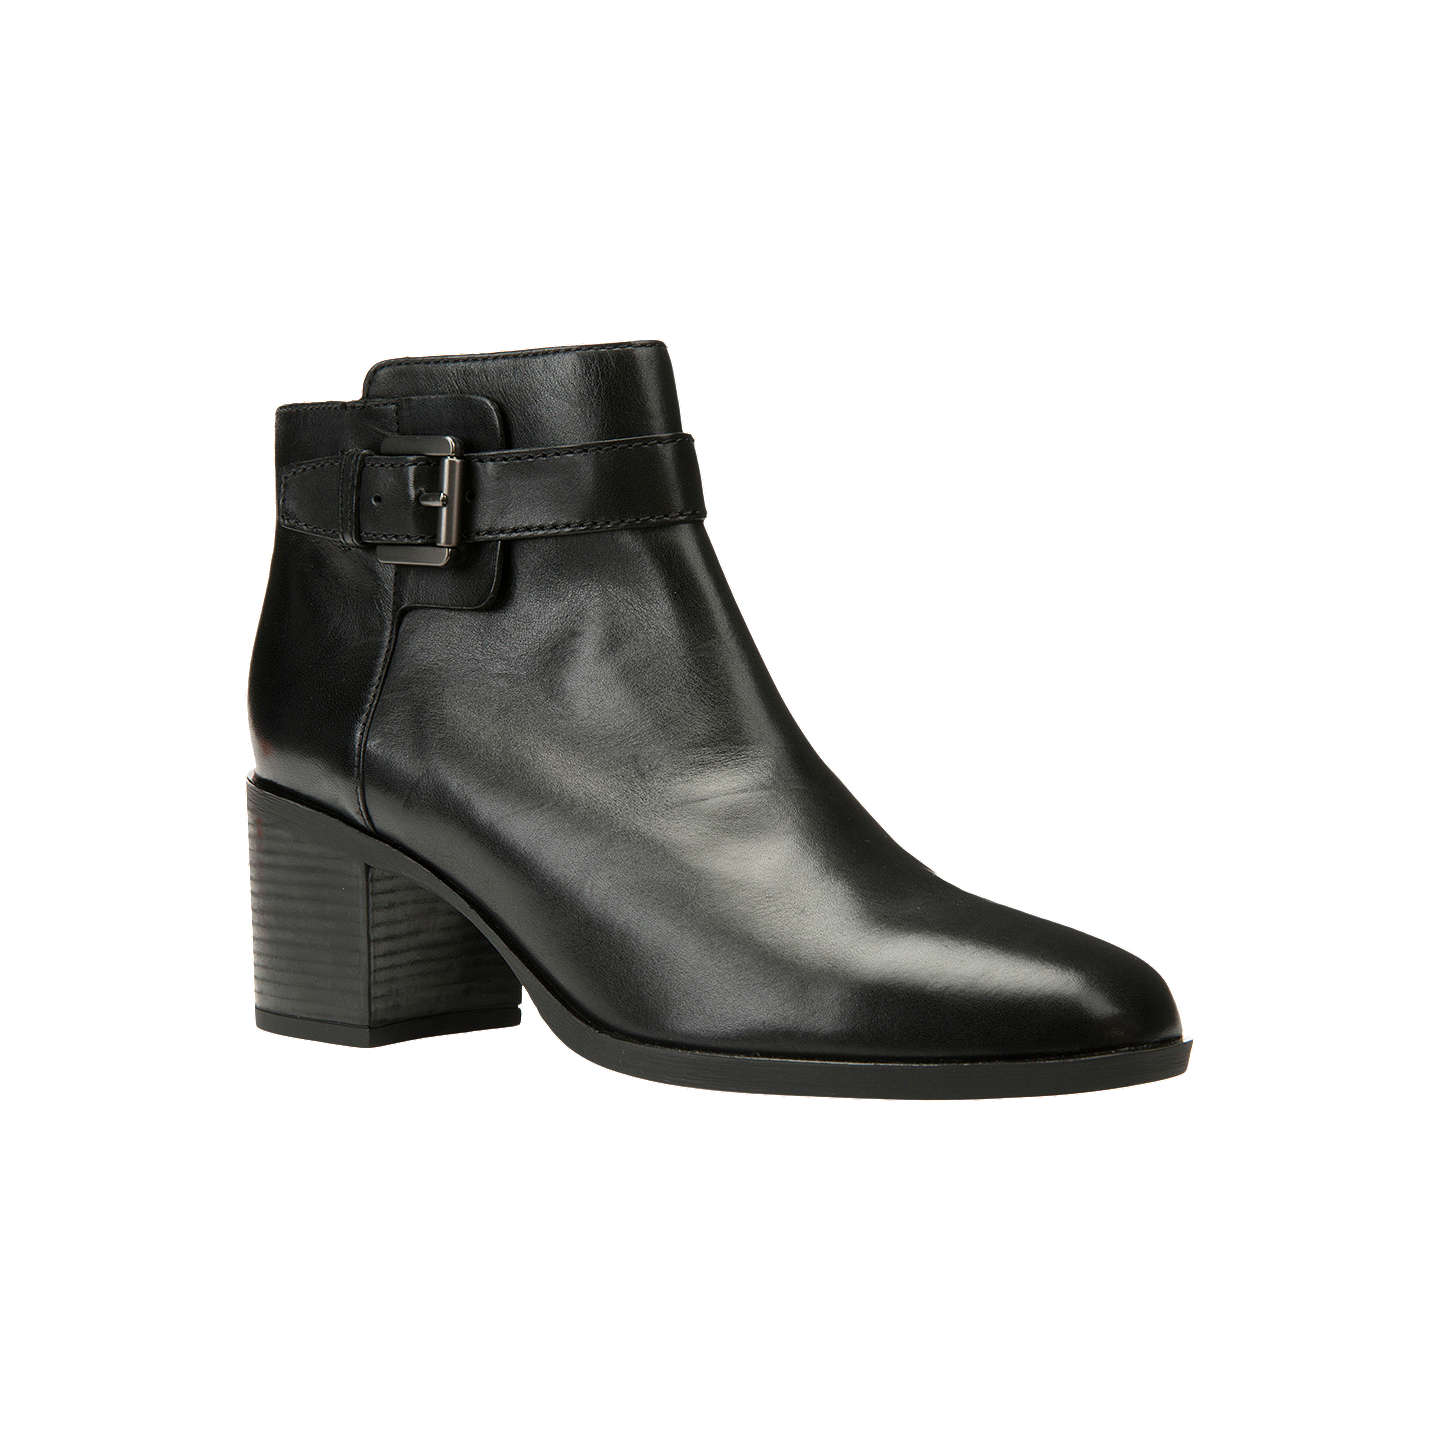 BuyGeox Glynna Buckle Block Heeled Ankle Boots, Black, 3 Online at johnlewis.com